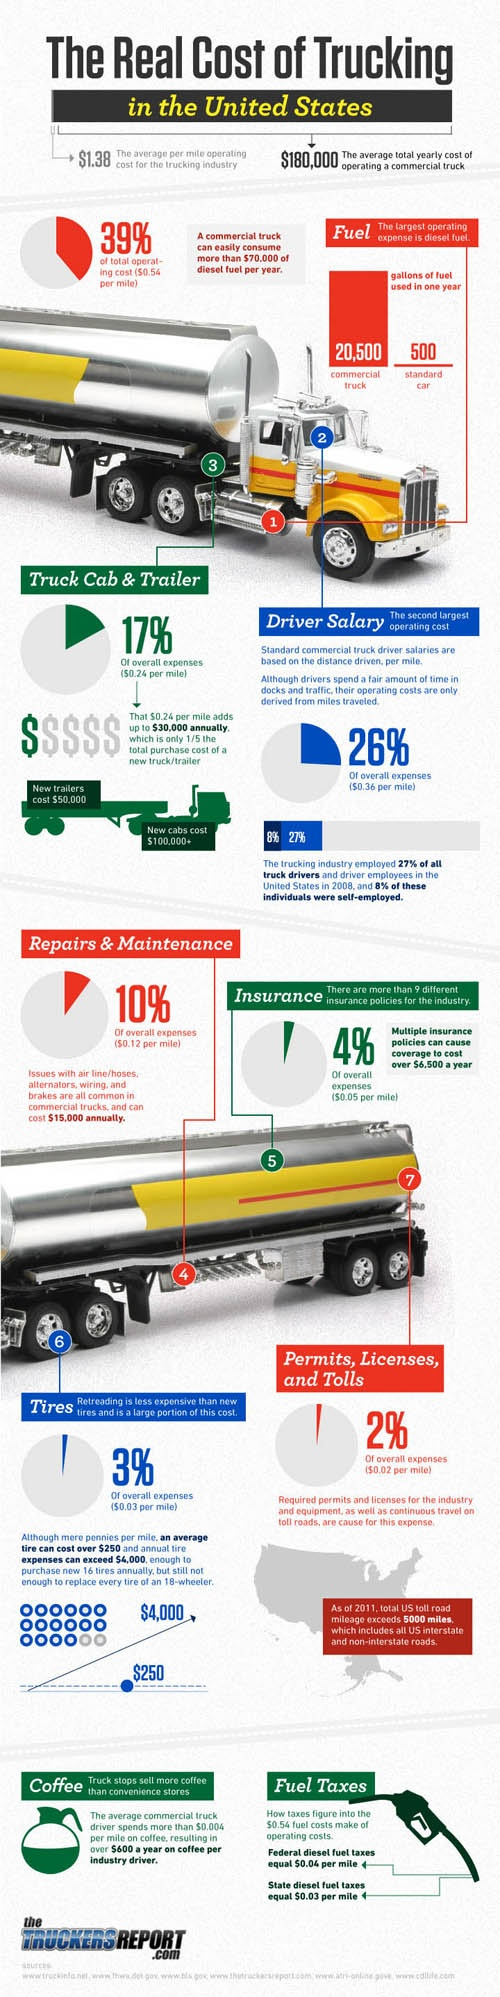 The real cost of trucking infographic on http www bestinfographic